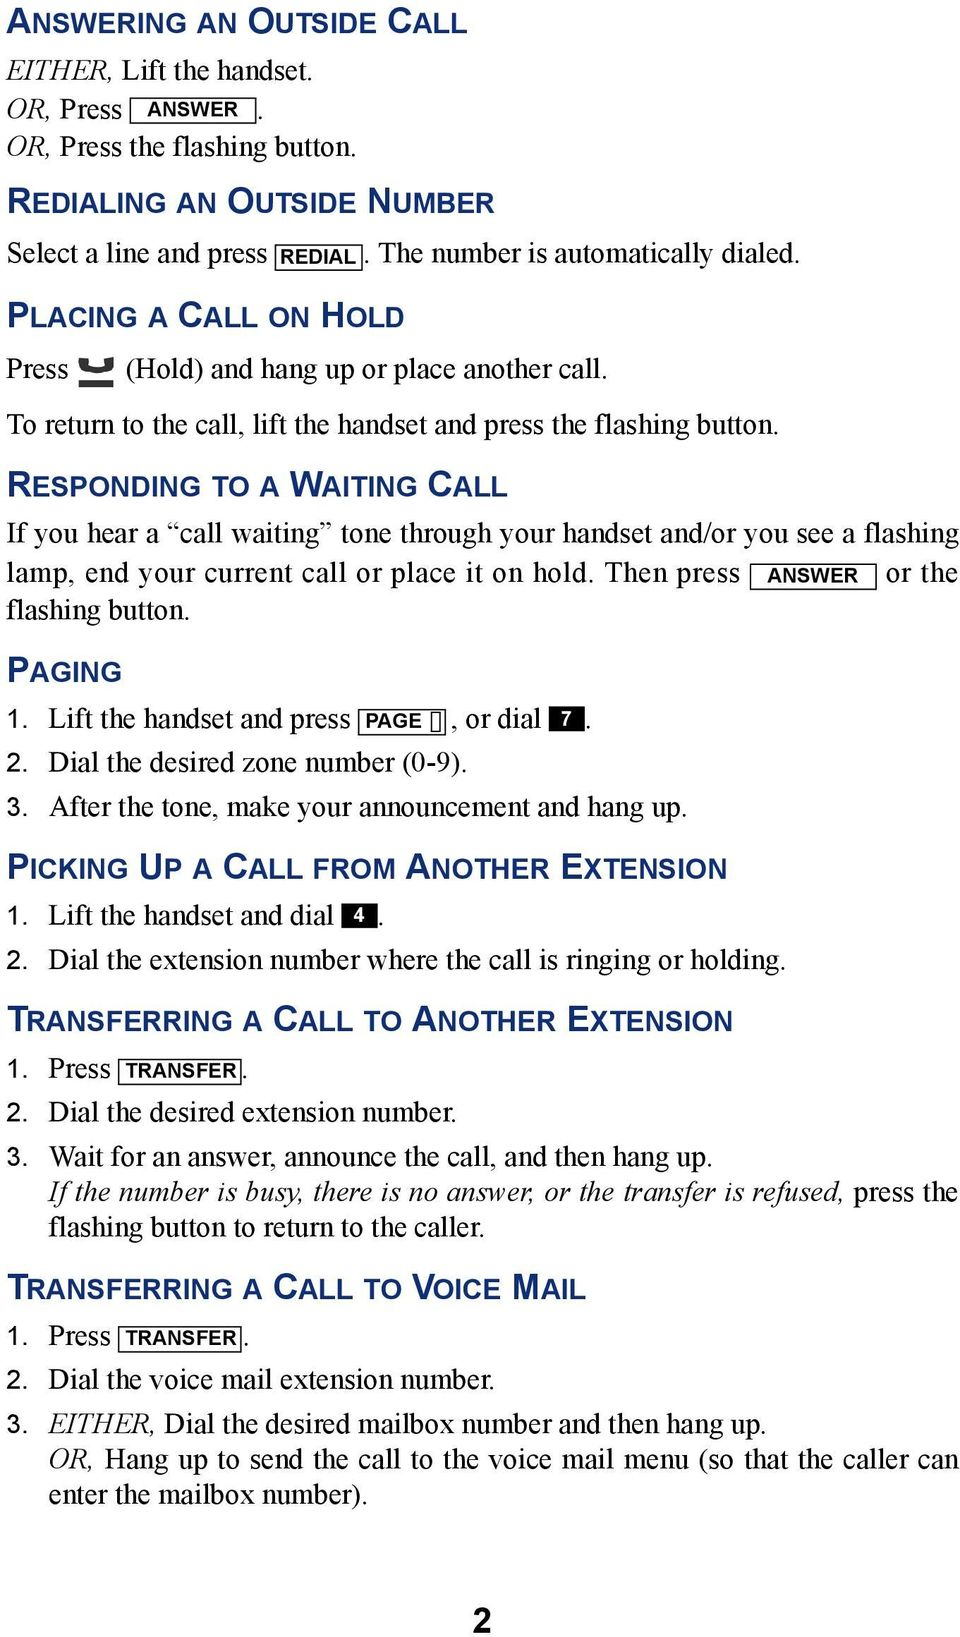 RESPONDING TO A WAITING CALL If you hear a call waiting tone through your handset and/or you see a flashing lamp, end your current call or place it on hold. Then press ANSWER or the flashing button.